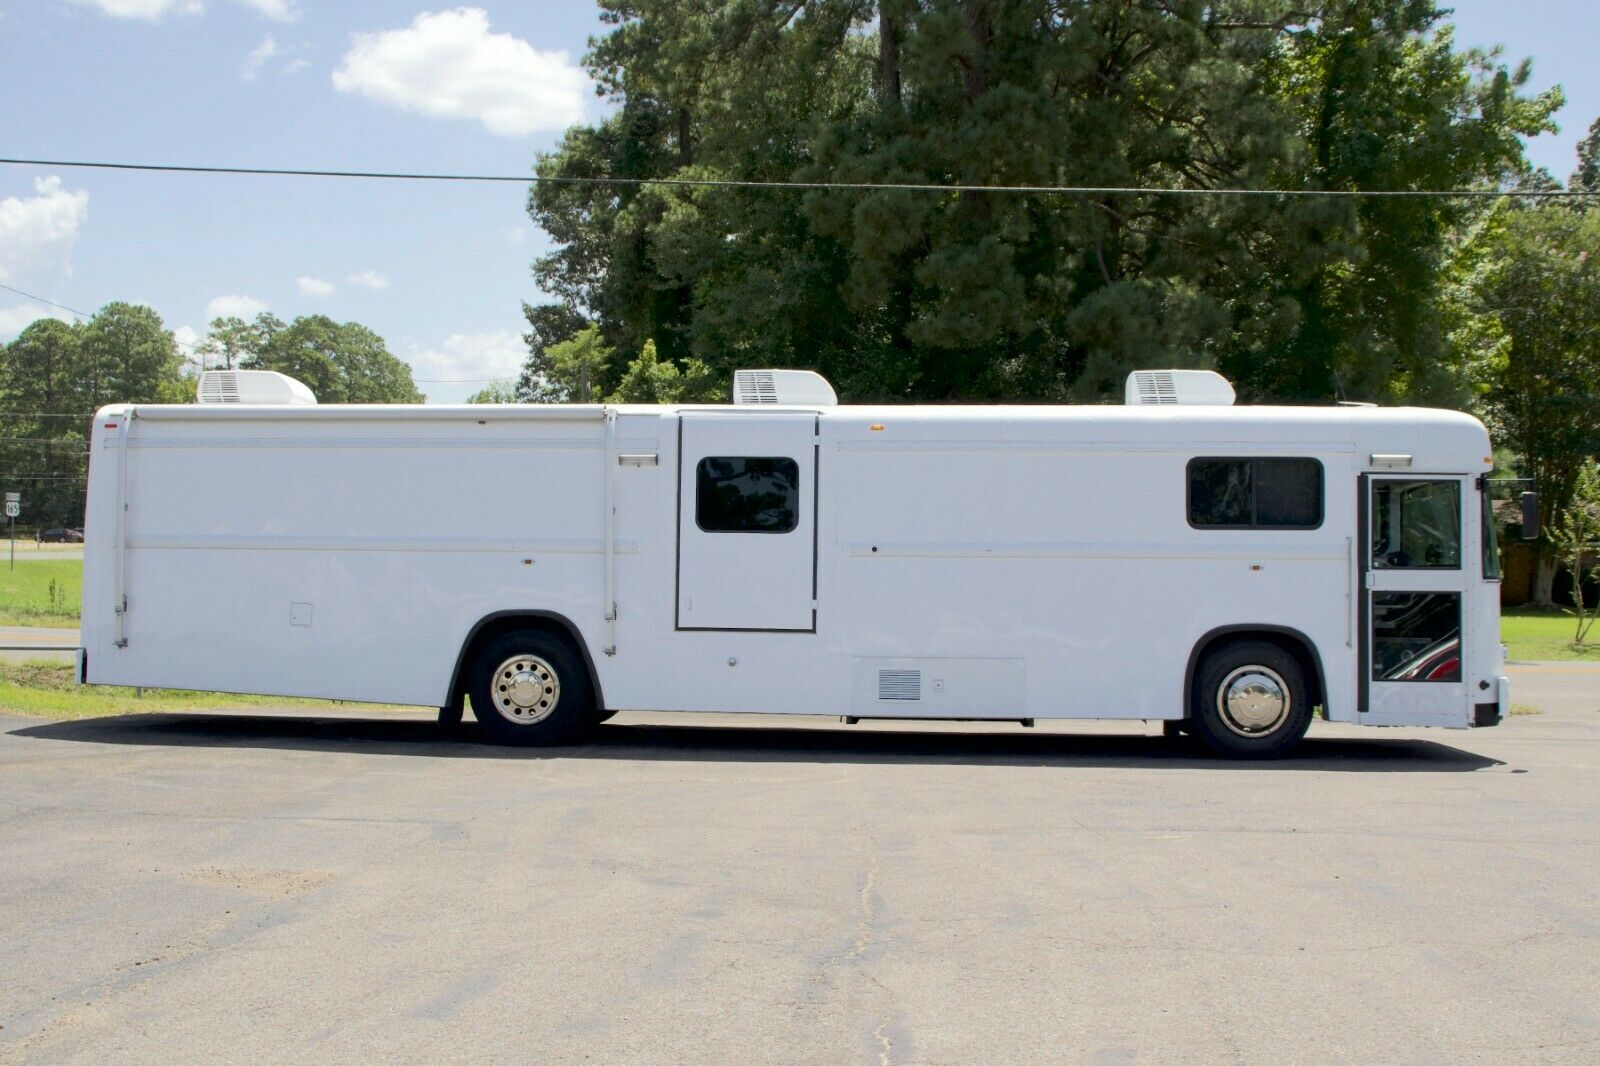 Mobile Medical Clinic Bus - Doctor's Office On Wheels - Handicap Accessible